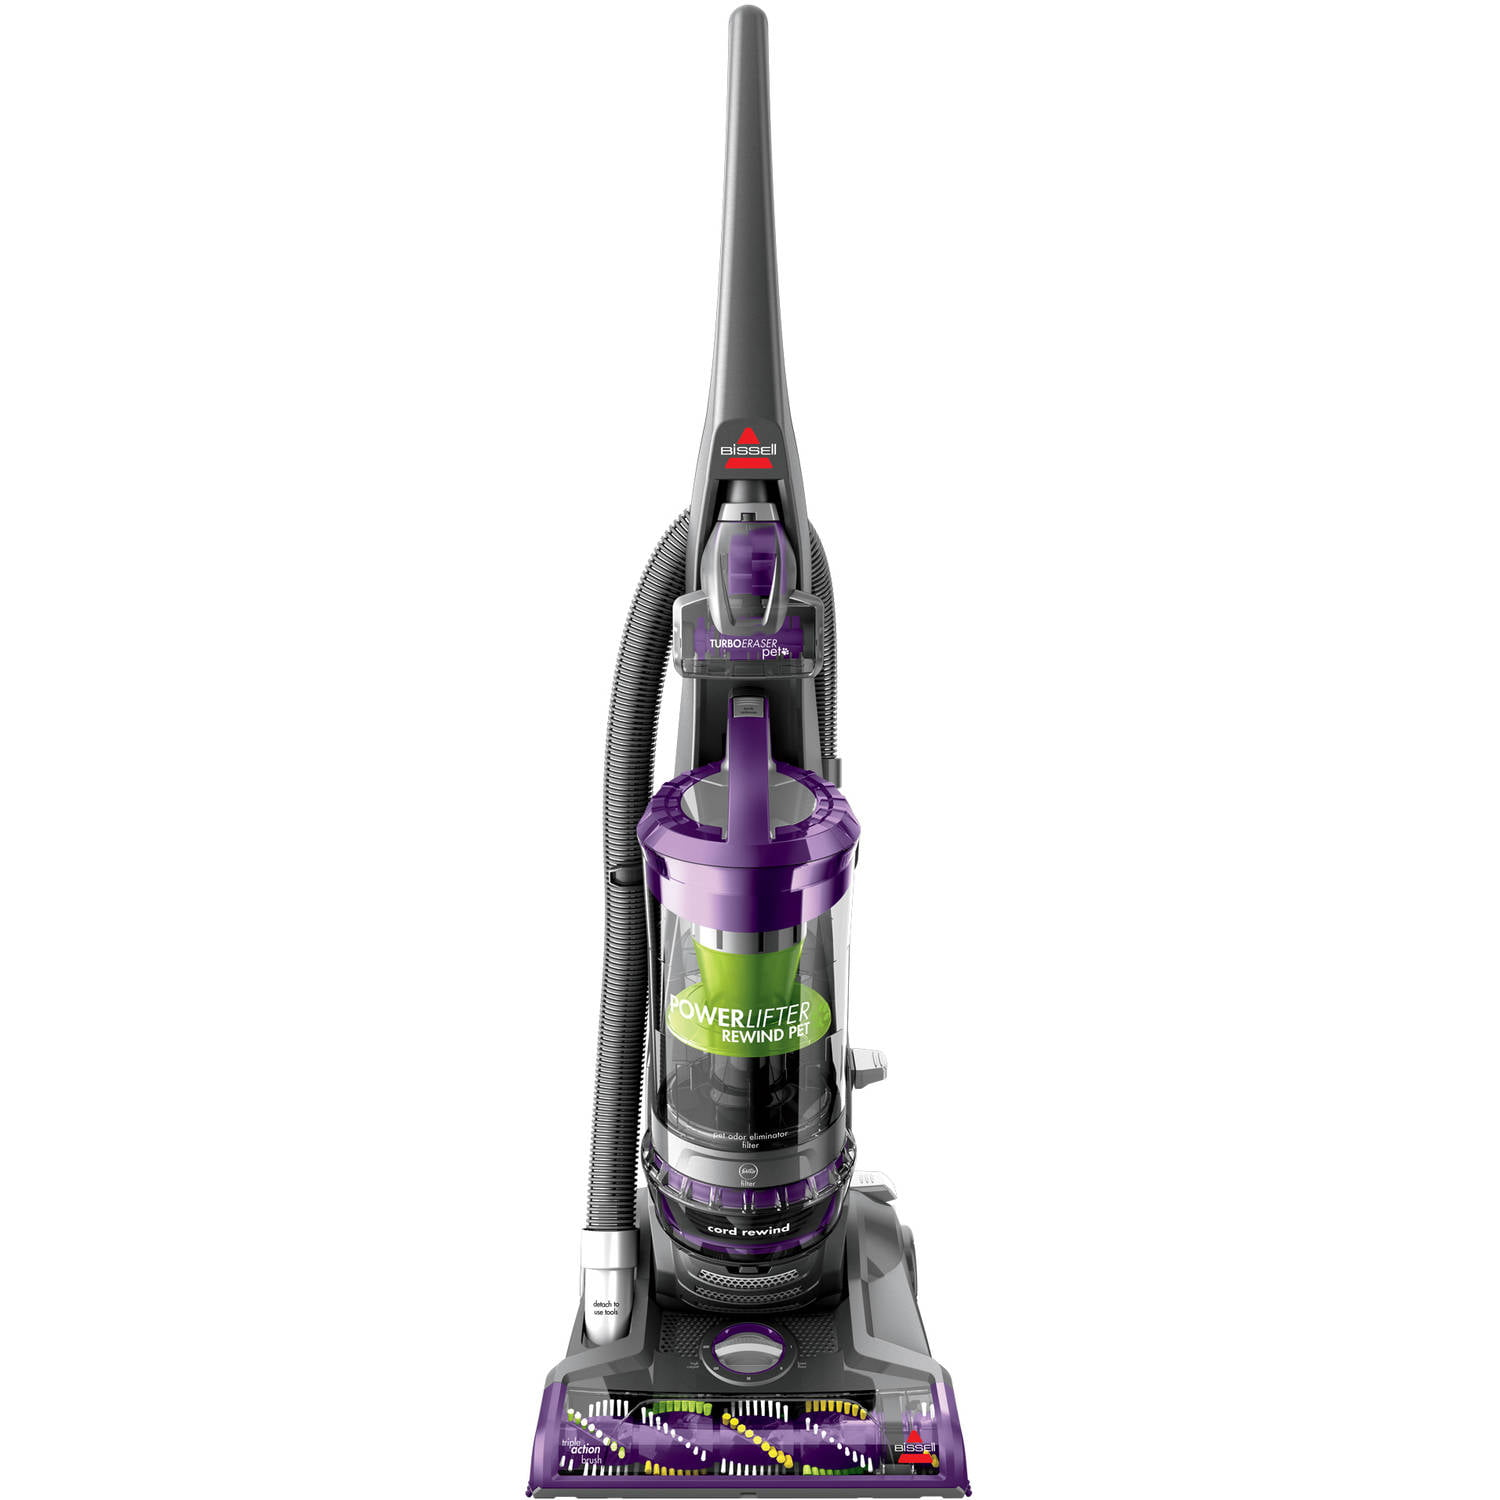 Bissell PowerLifter Pet Rewind Bagless Upright Vacuum Cleaner (Automatic Cord Rewind), 1792 by Bissell Homecare